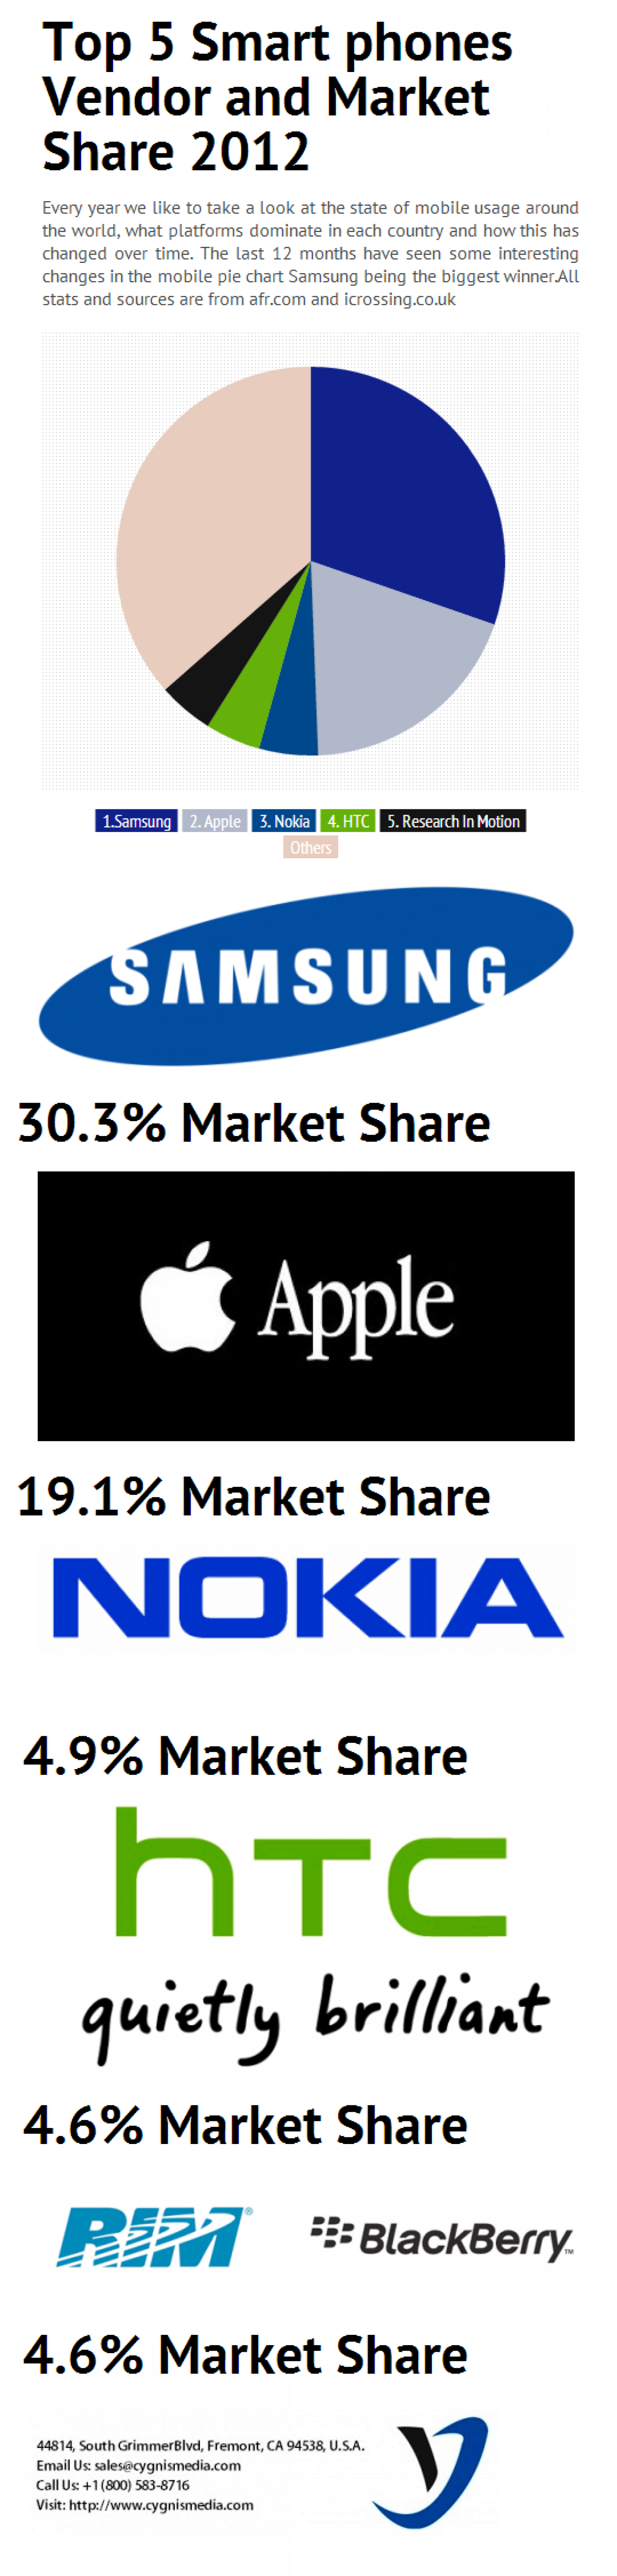 Top 5 Mobile Phone Vendors and market Share Infographic